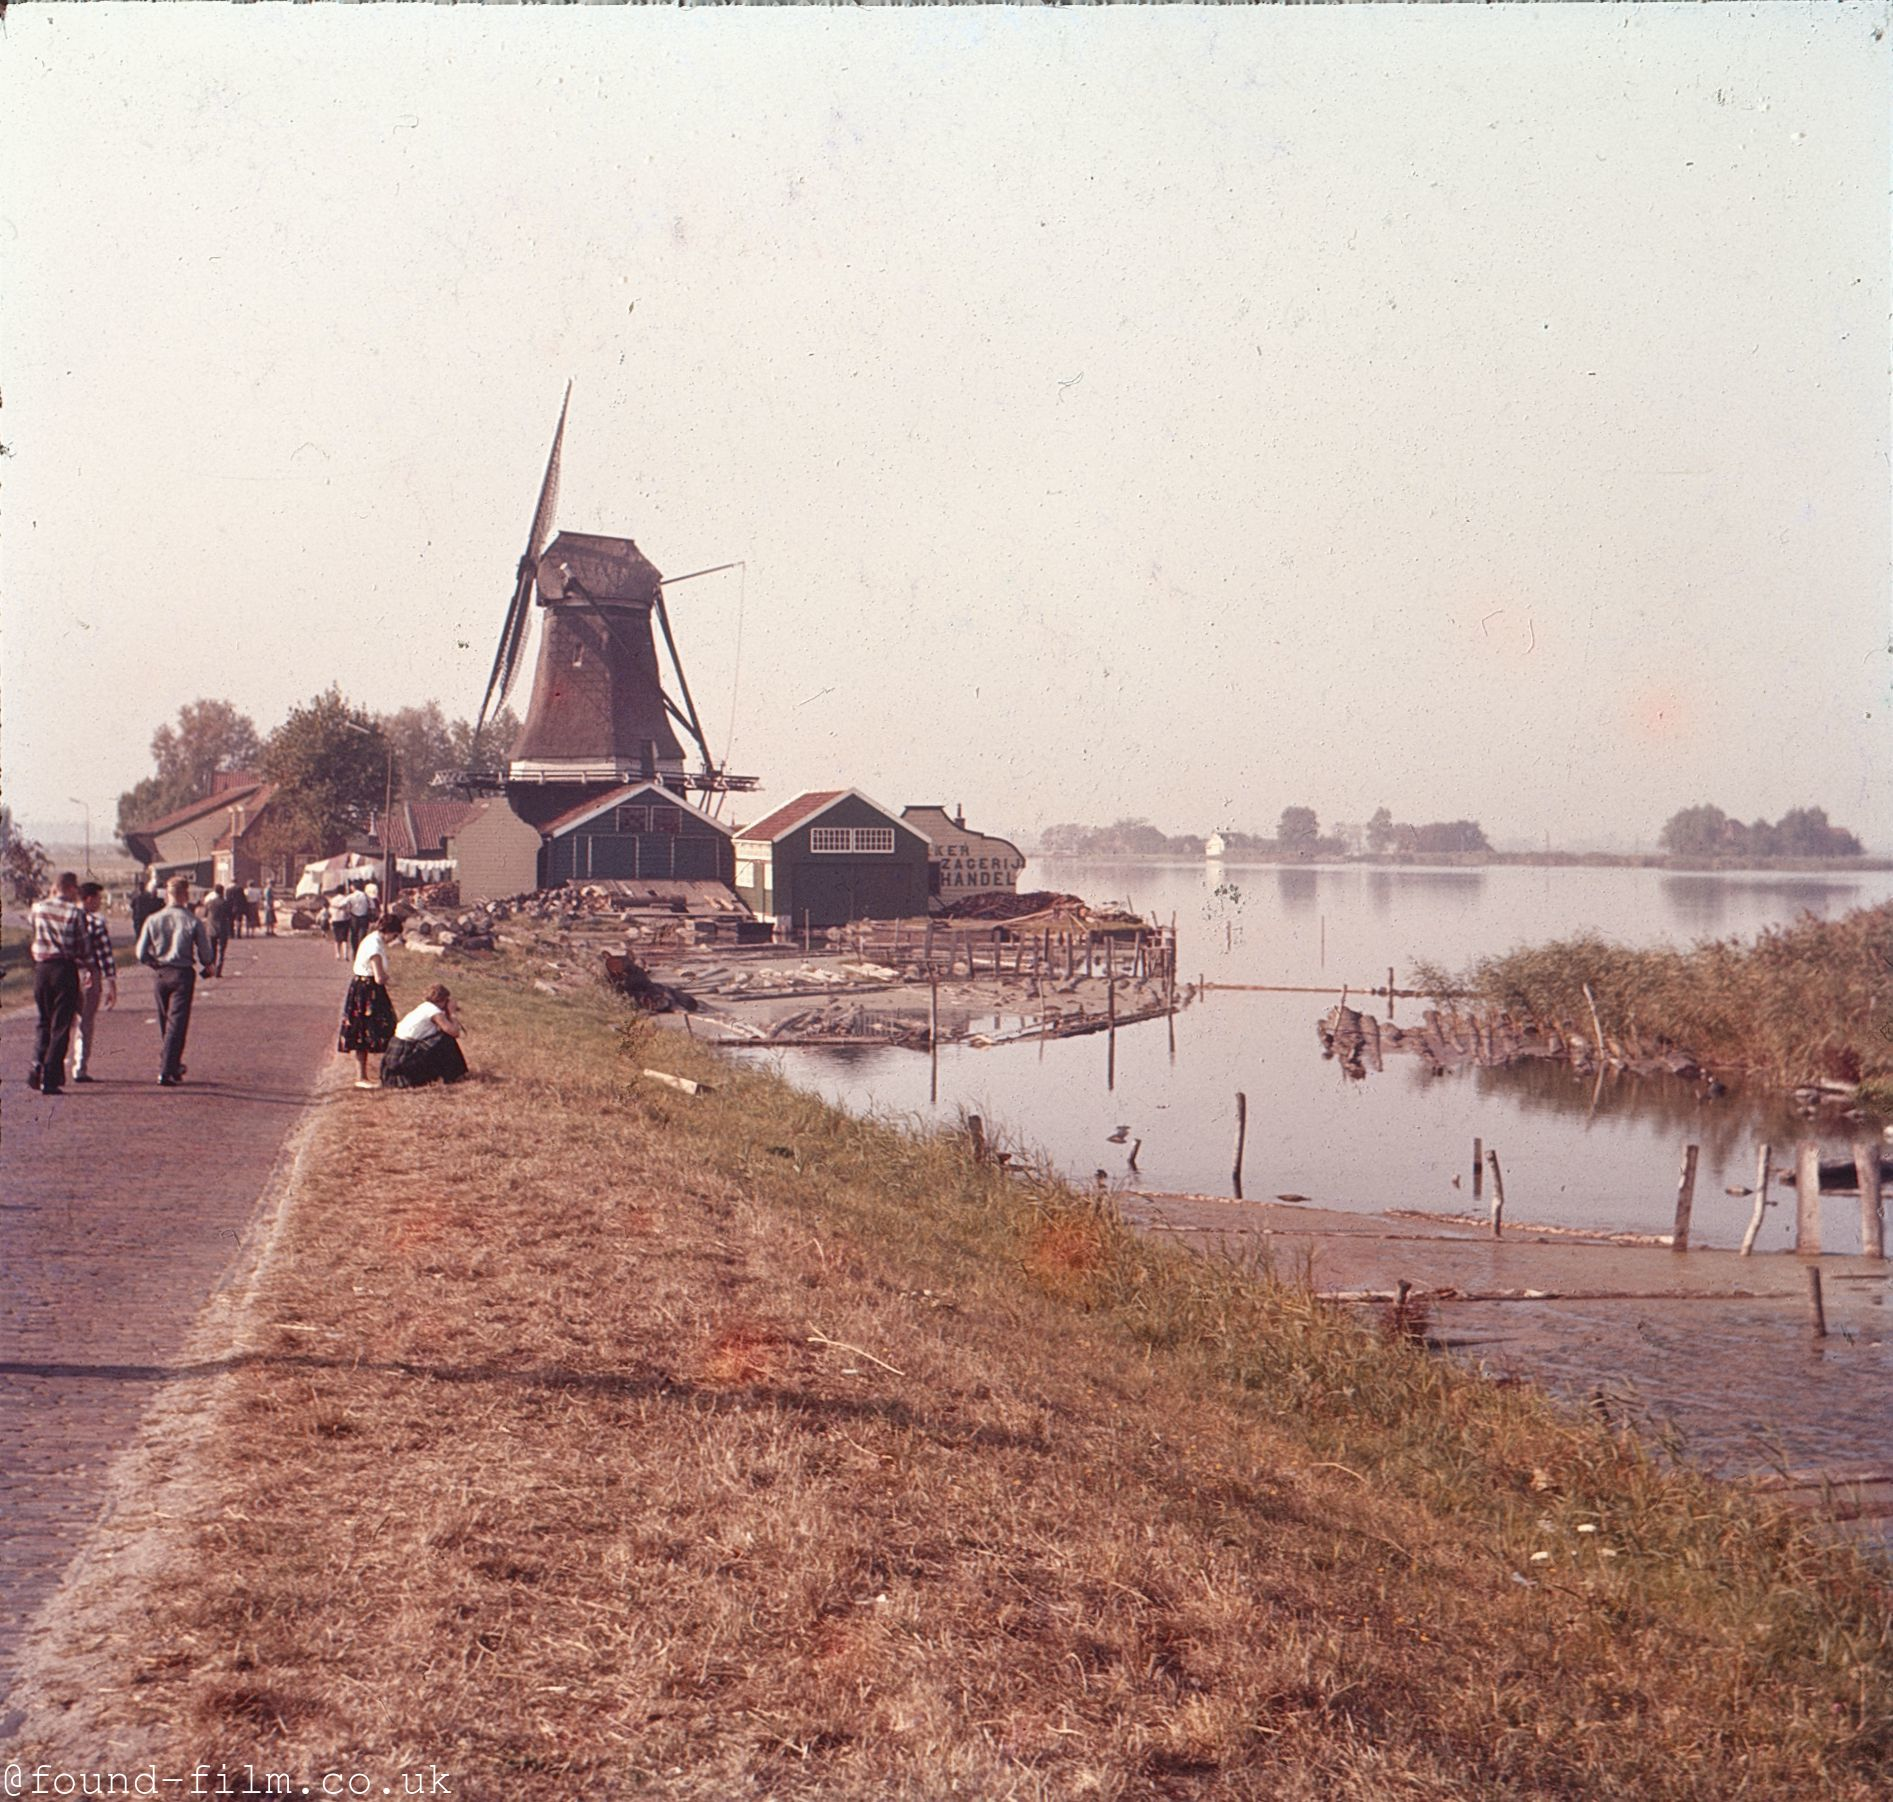 A Windmill in Holland in the 1960s